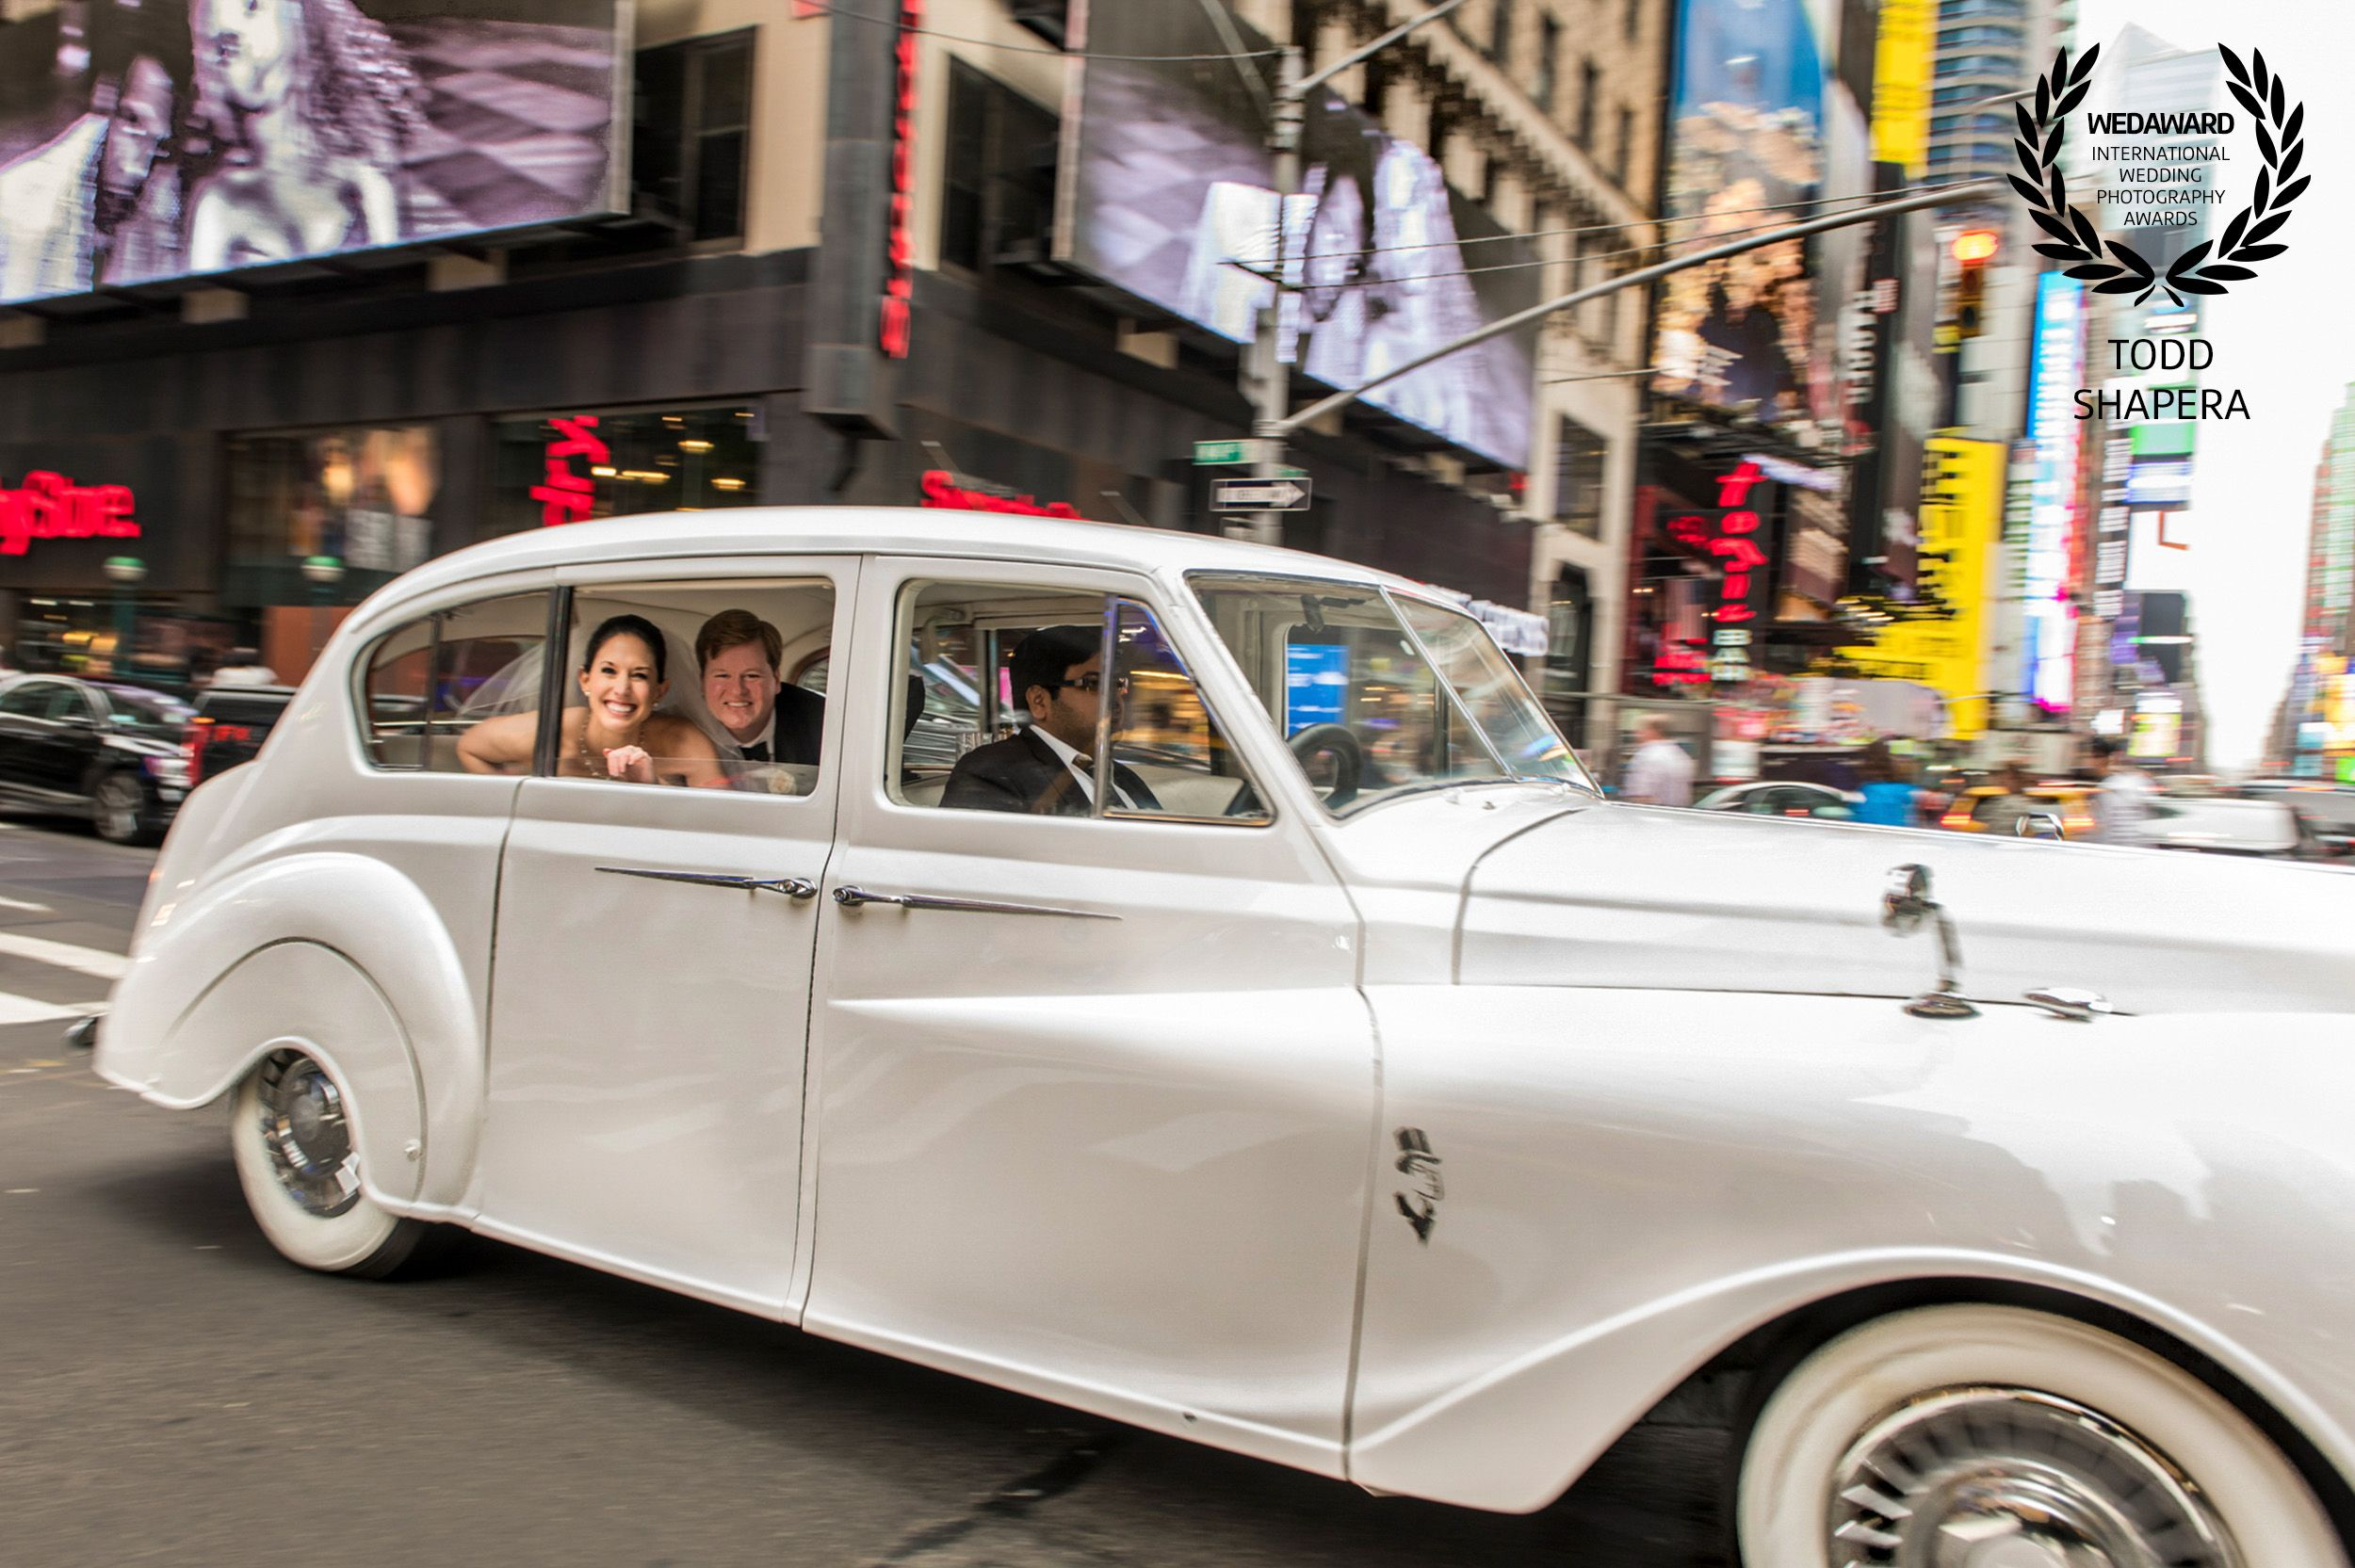 A luxurious post-wedding Rolls Royce ride through New York City